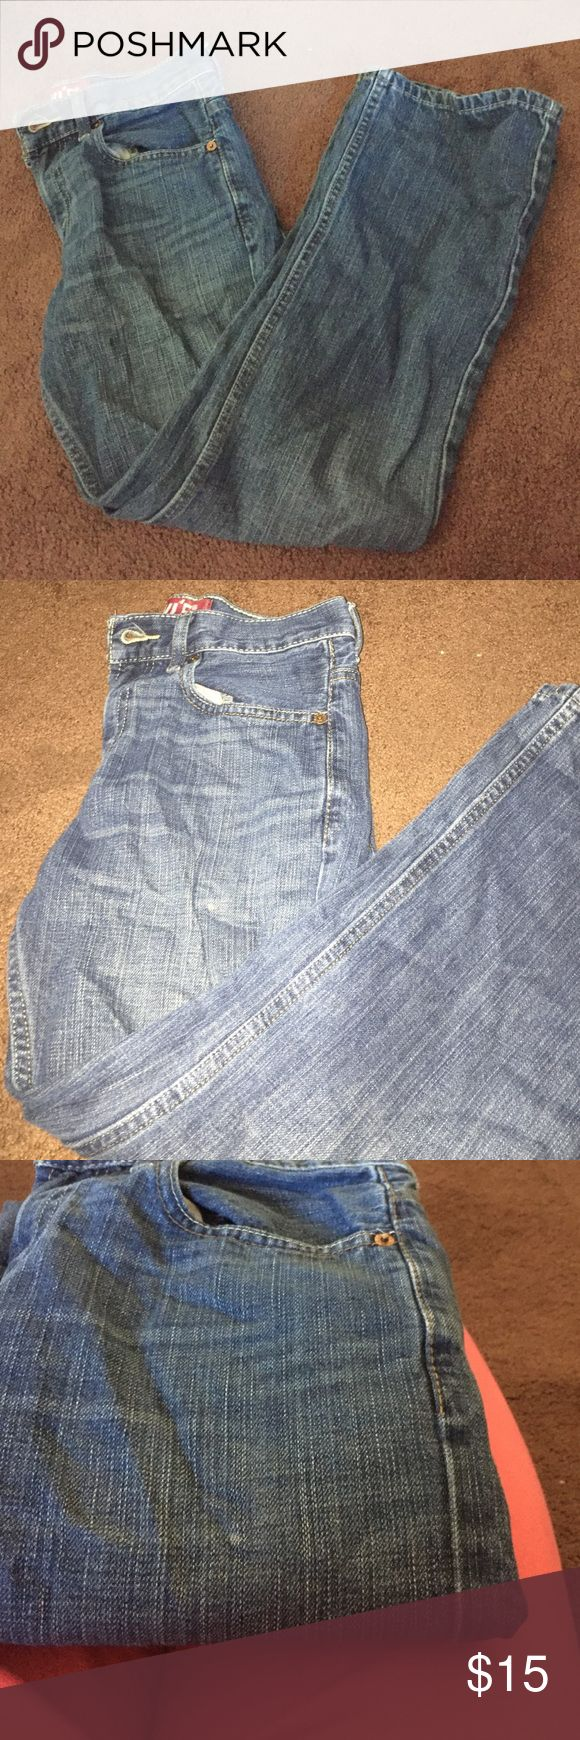 Levi's 527 Bootcut Good condition jeans. One spot shown in last photo. Size 26x 26 1/2 Levi's Jeans Bootcut